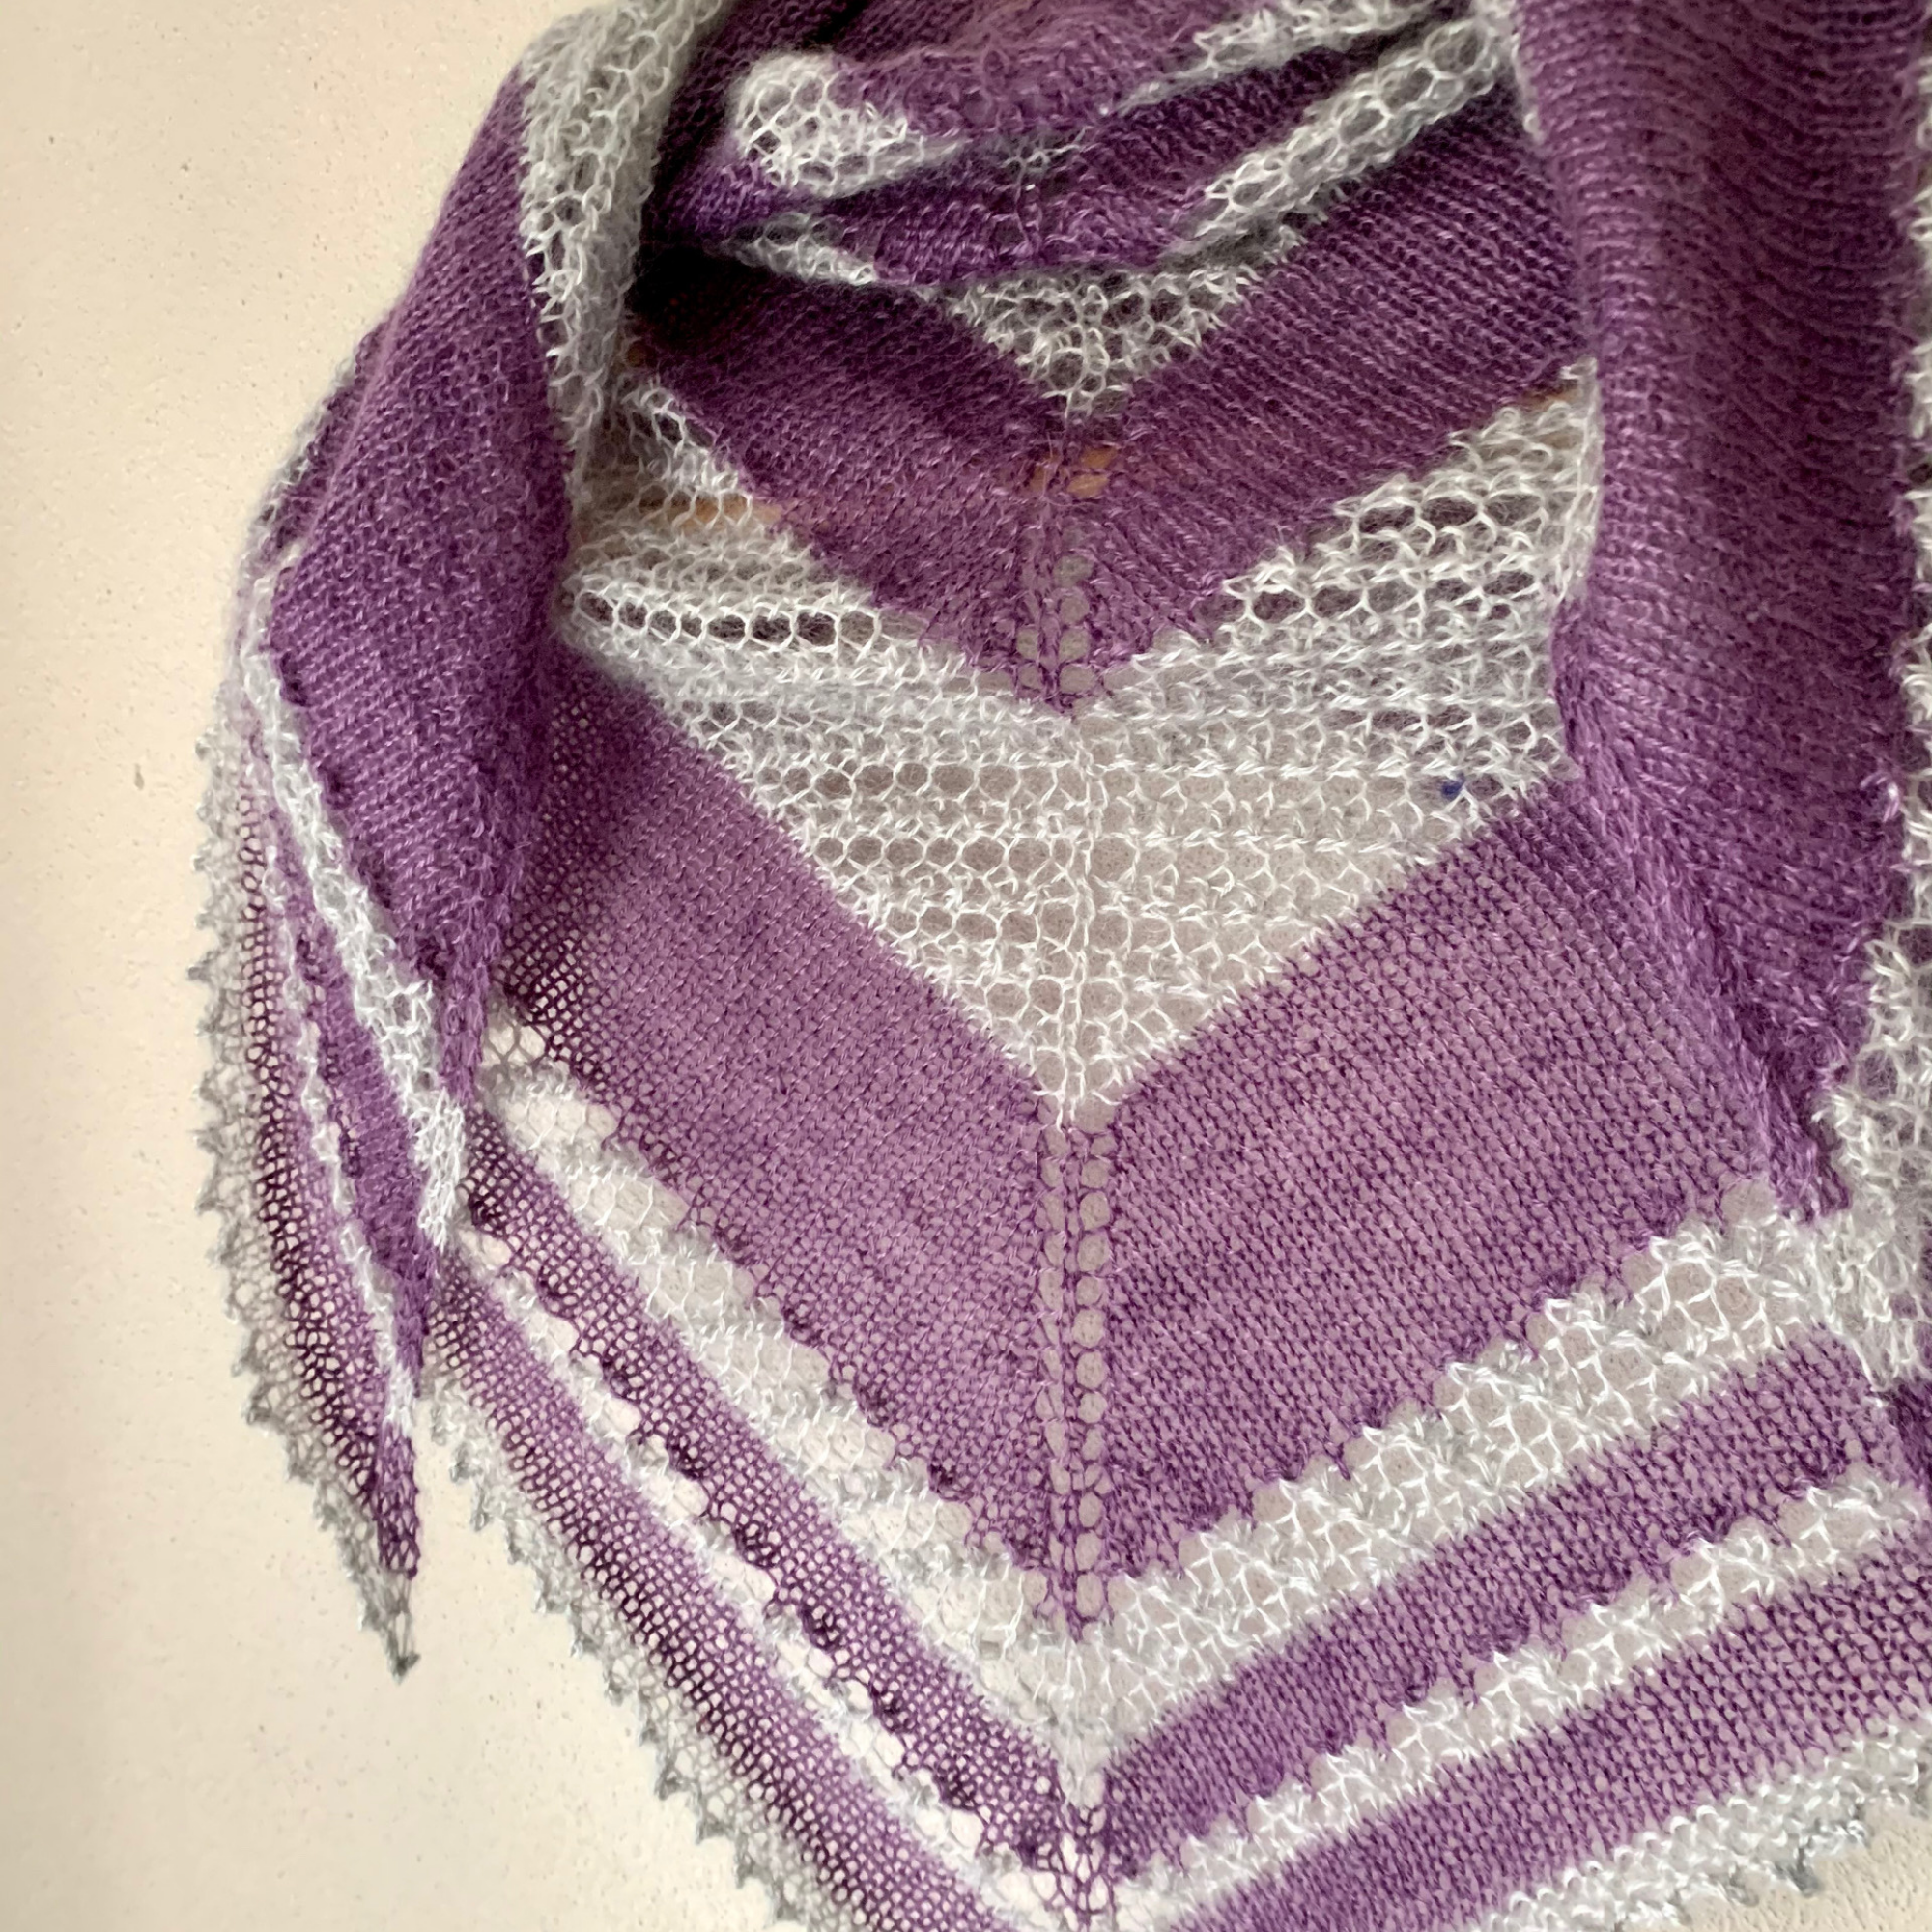 Shooting Stars. Close up of shawl. The shawl is wrapped around to reflect the edge drapping over the shoulder.